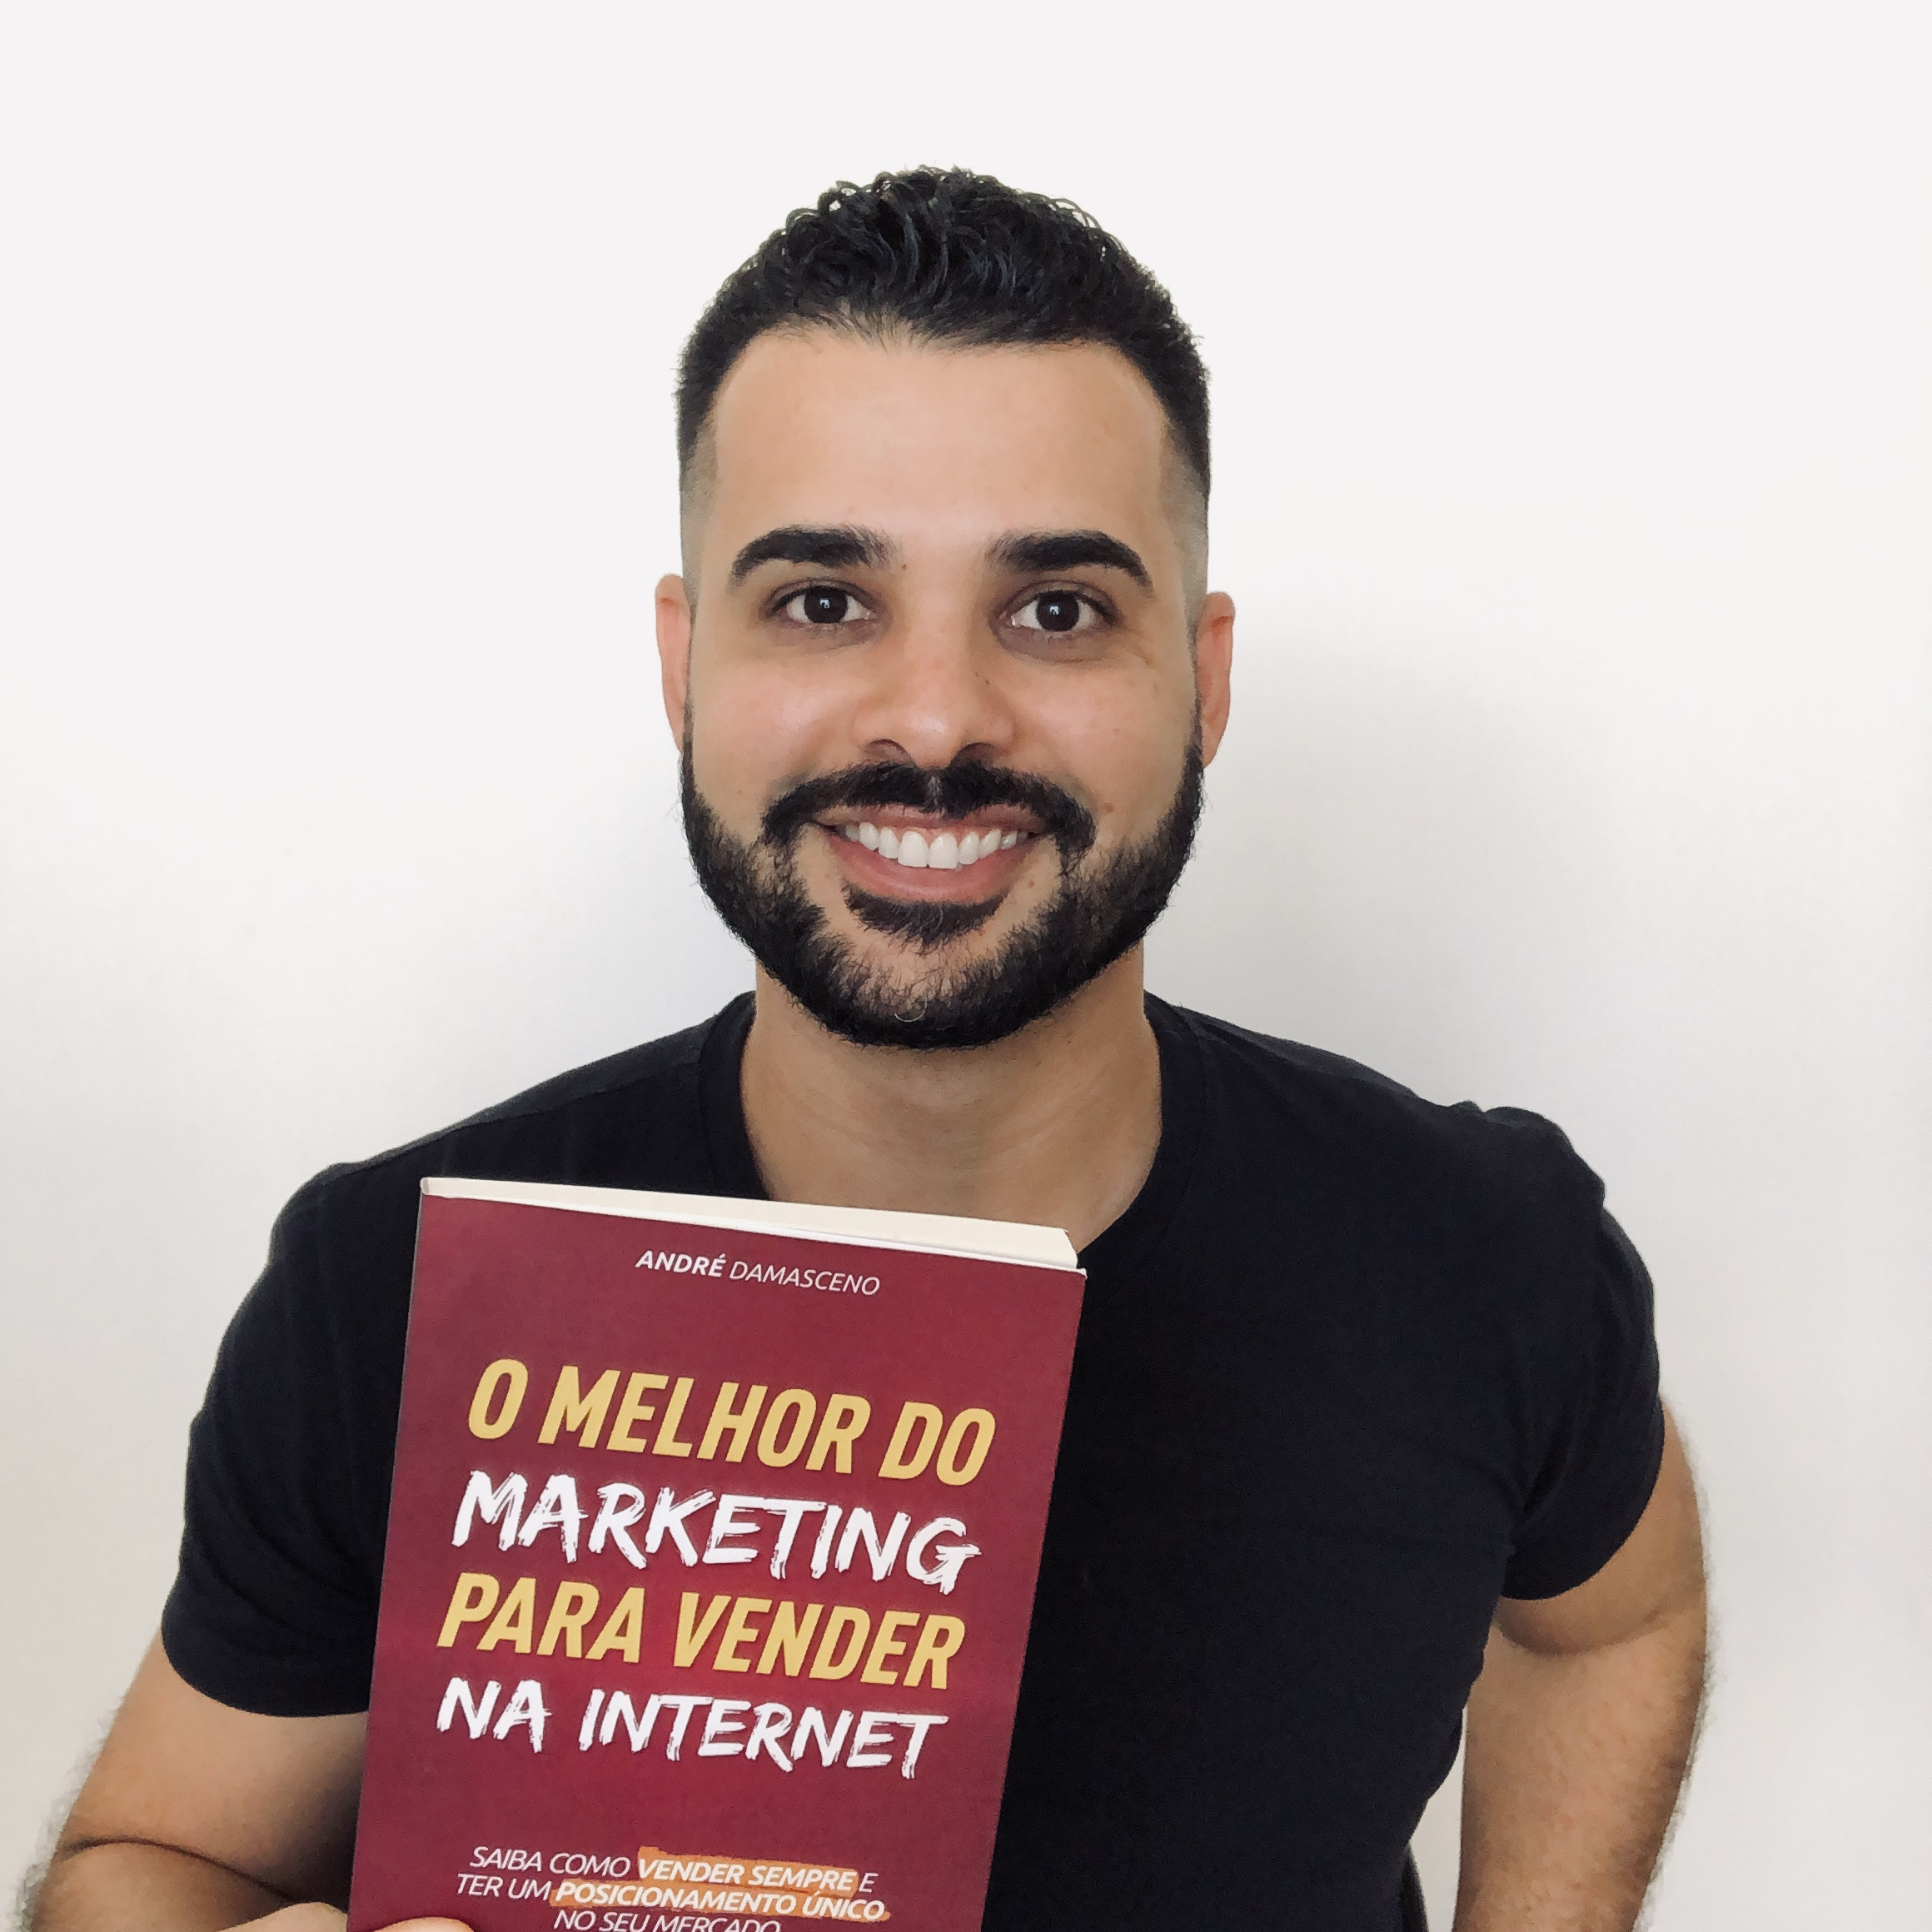 André Damasceno - O Melhor do Marketing